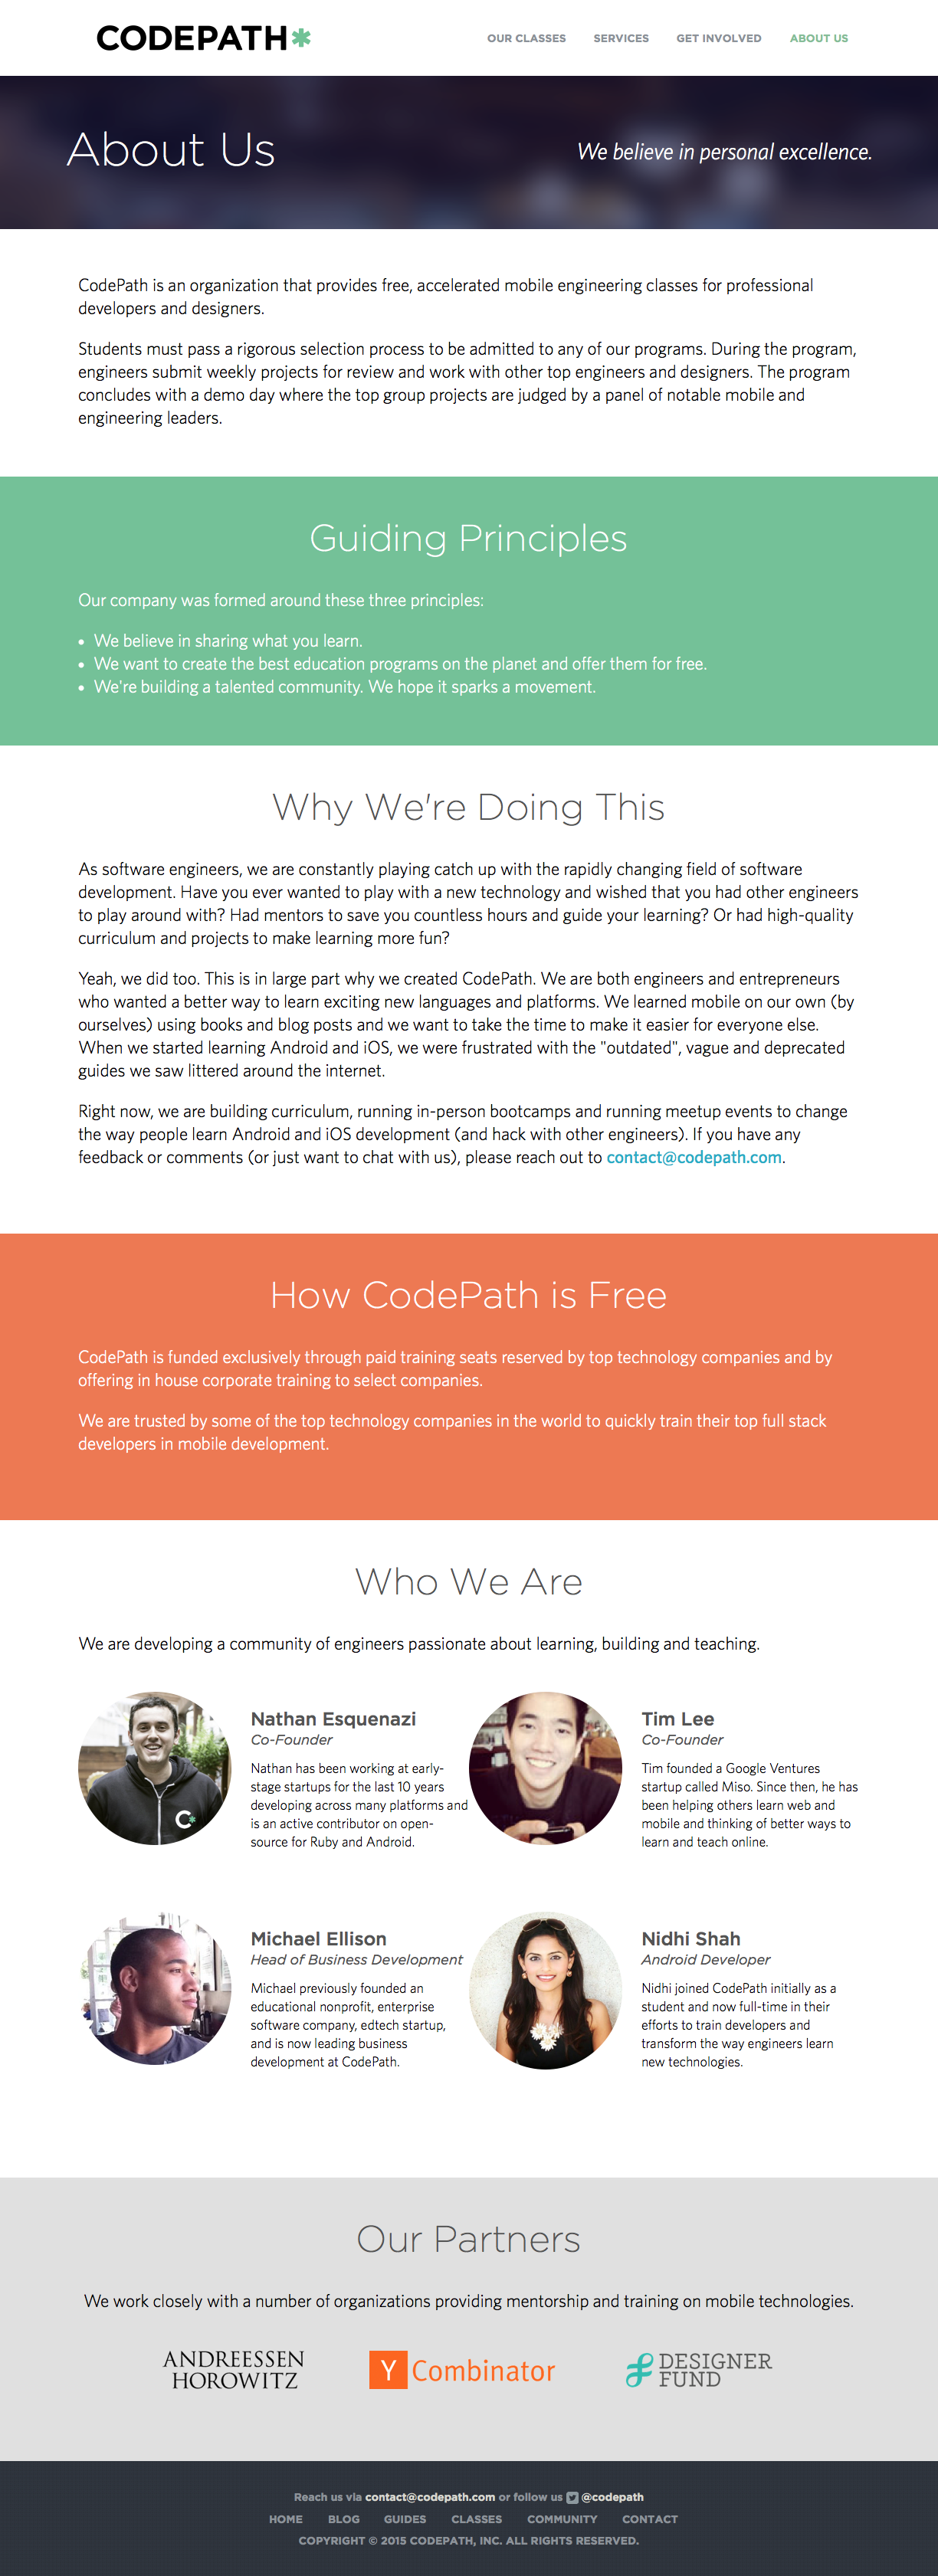 About Us | CodePath